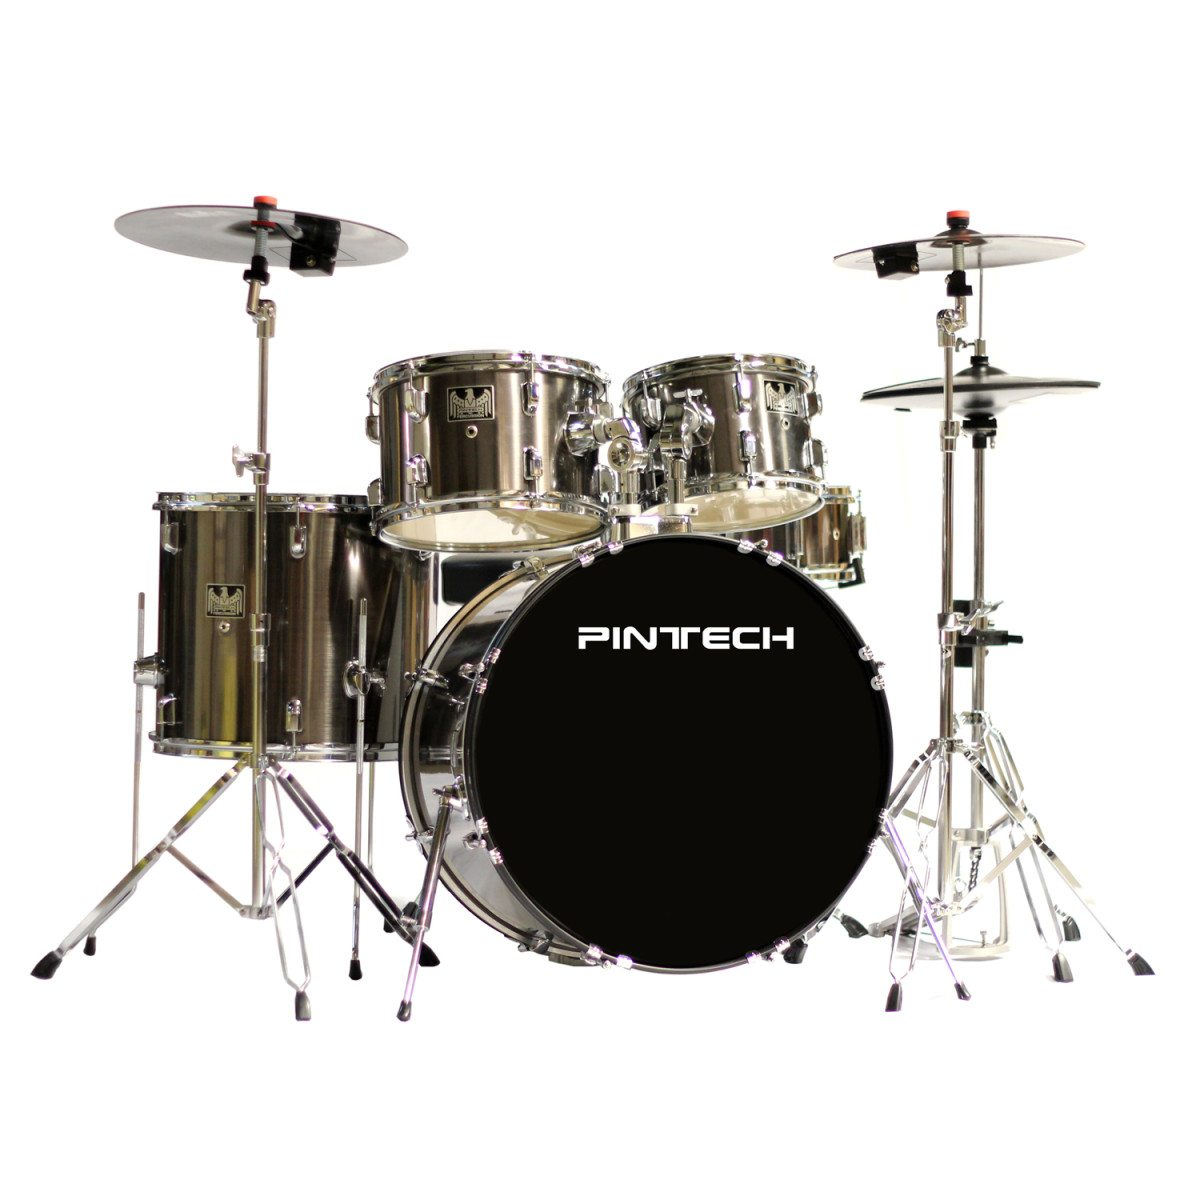 Pintech Jaguar Drum Kit